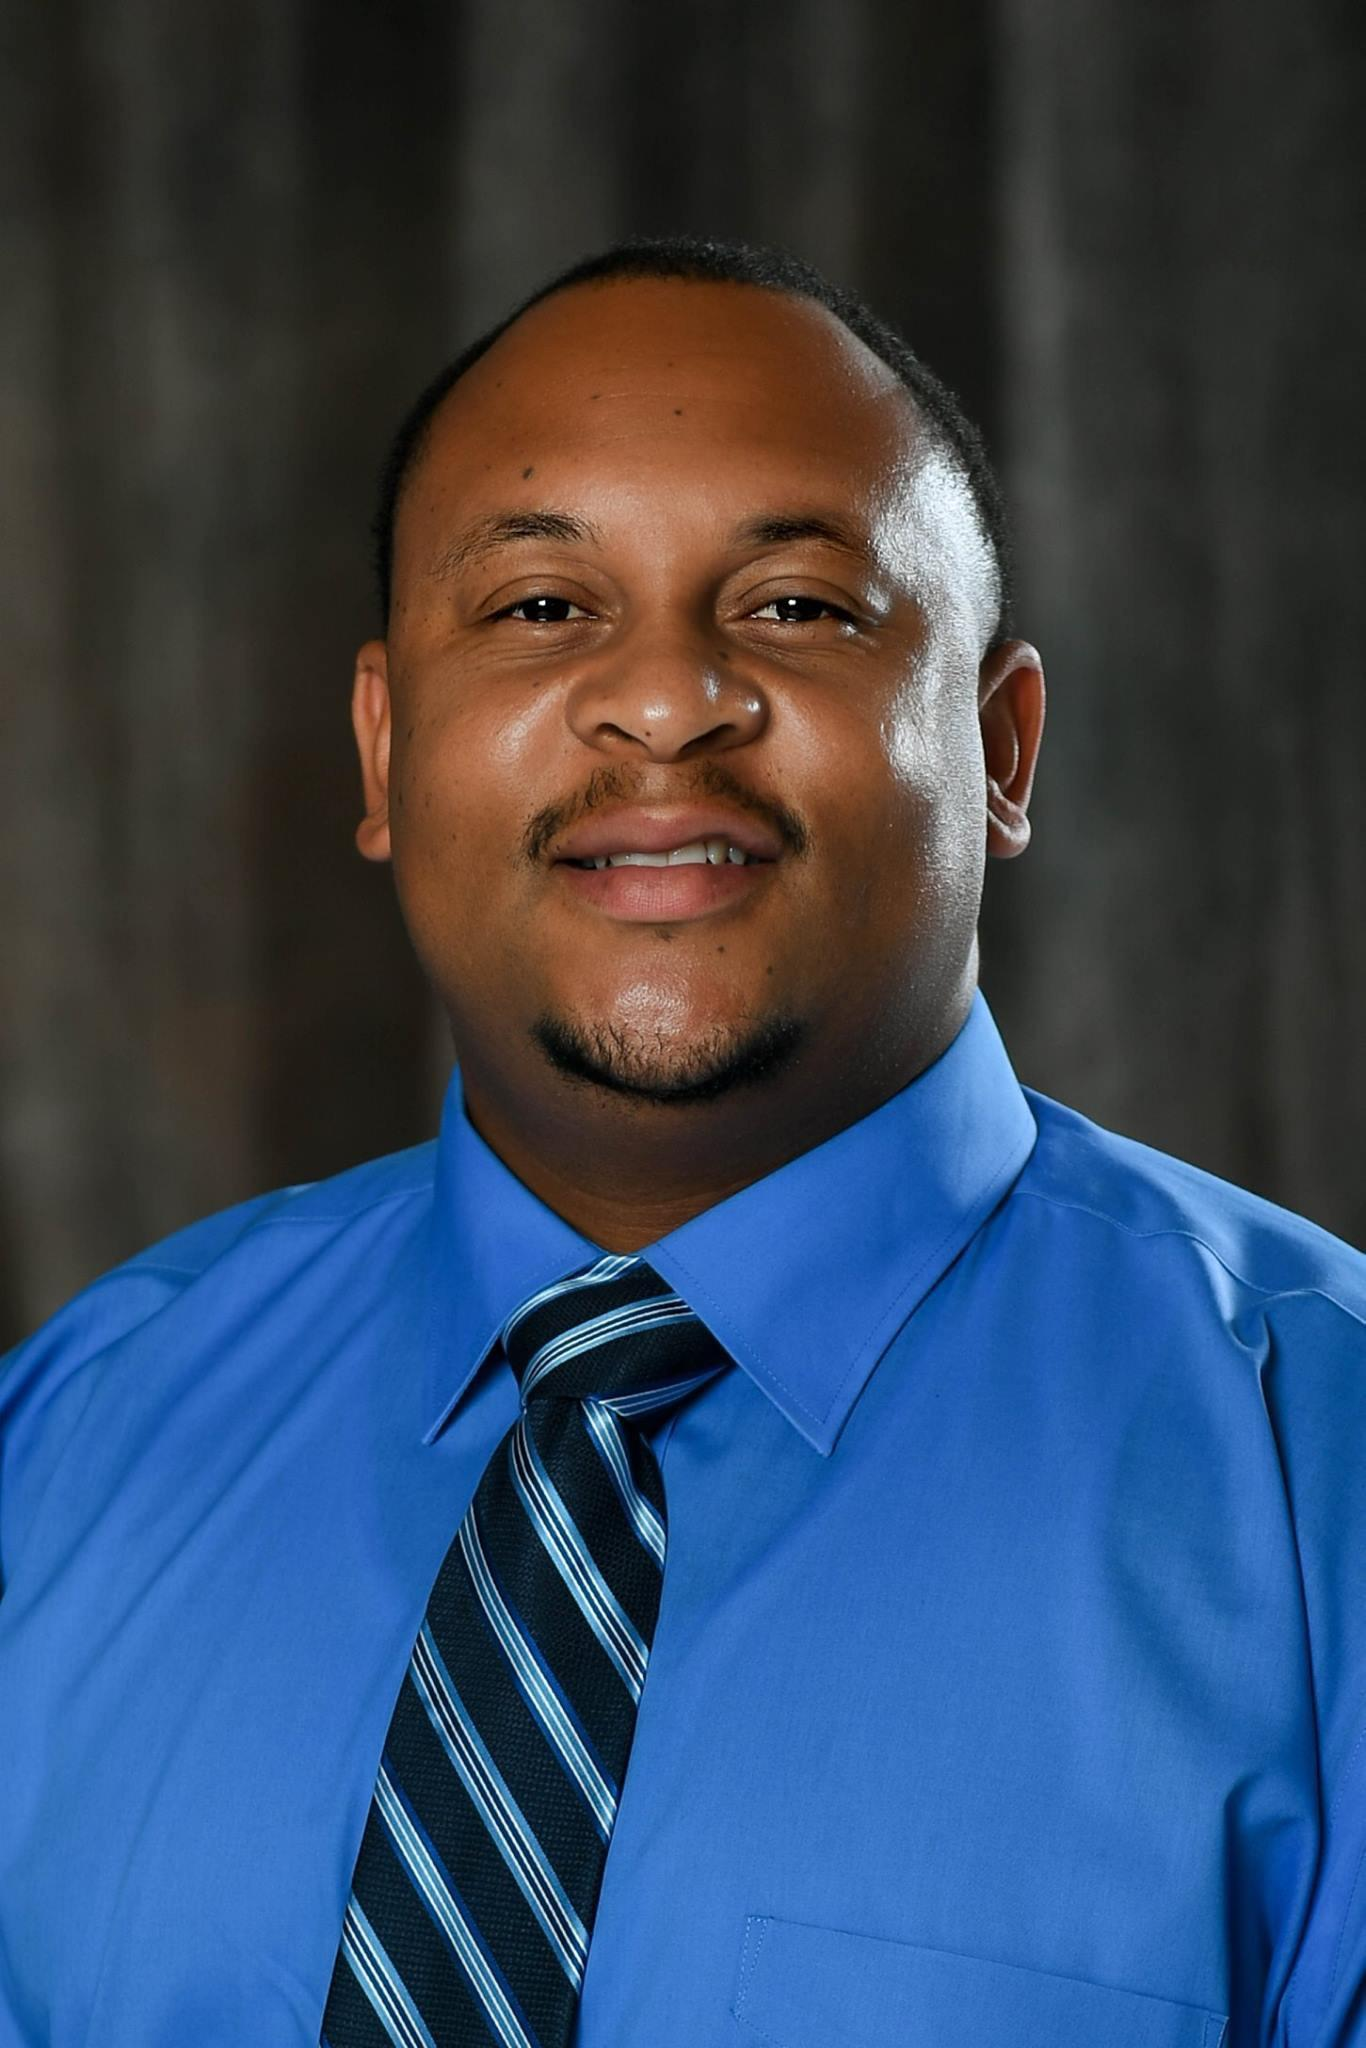 Mr. Timothy Williams, 2018-2019 Pinevale Teacher of the Year